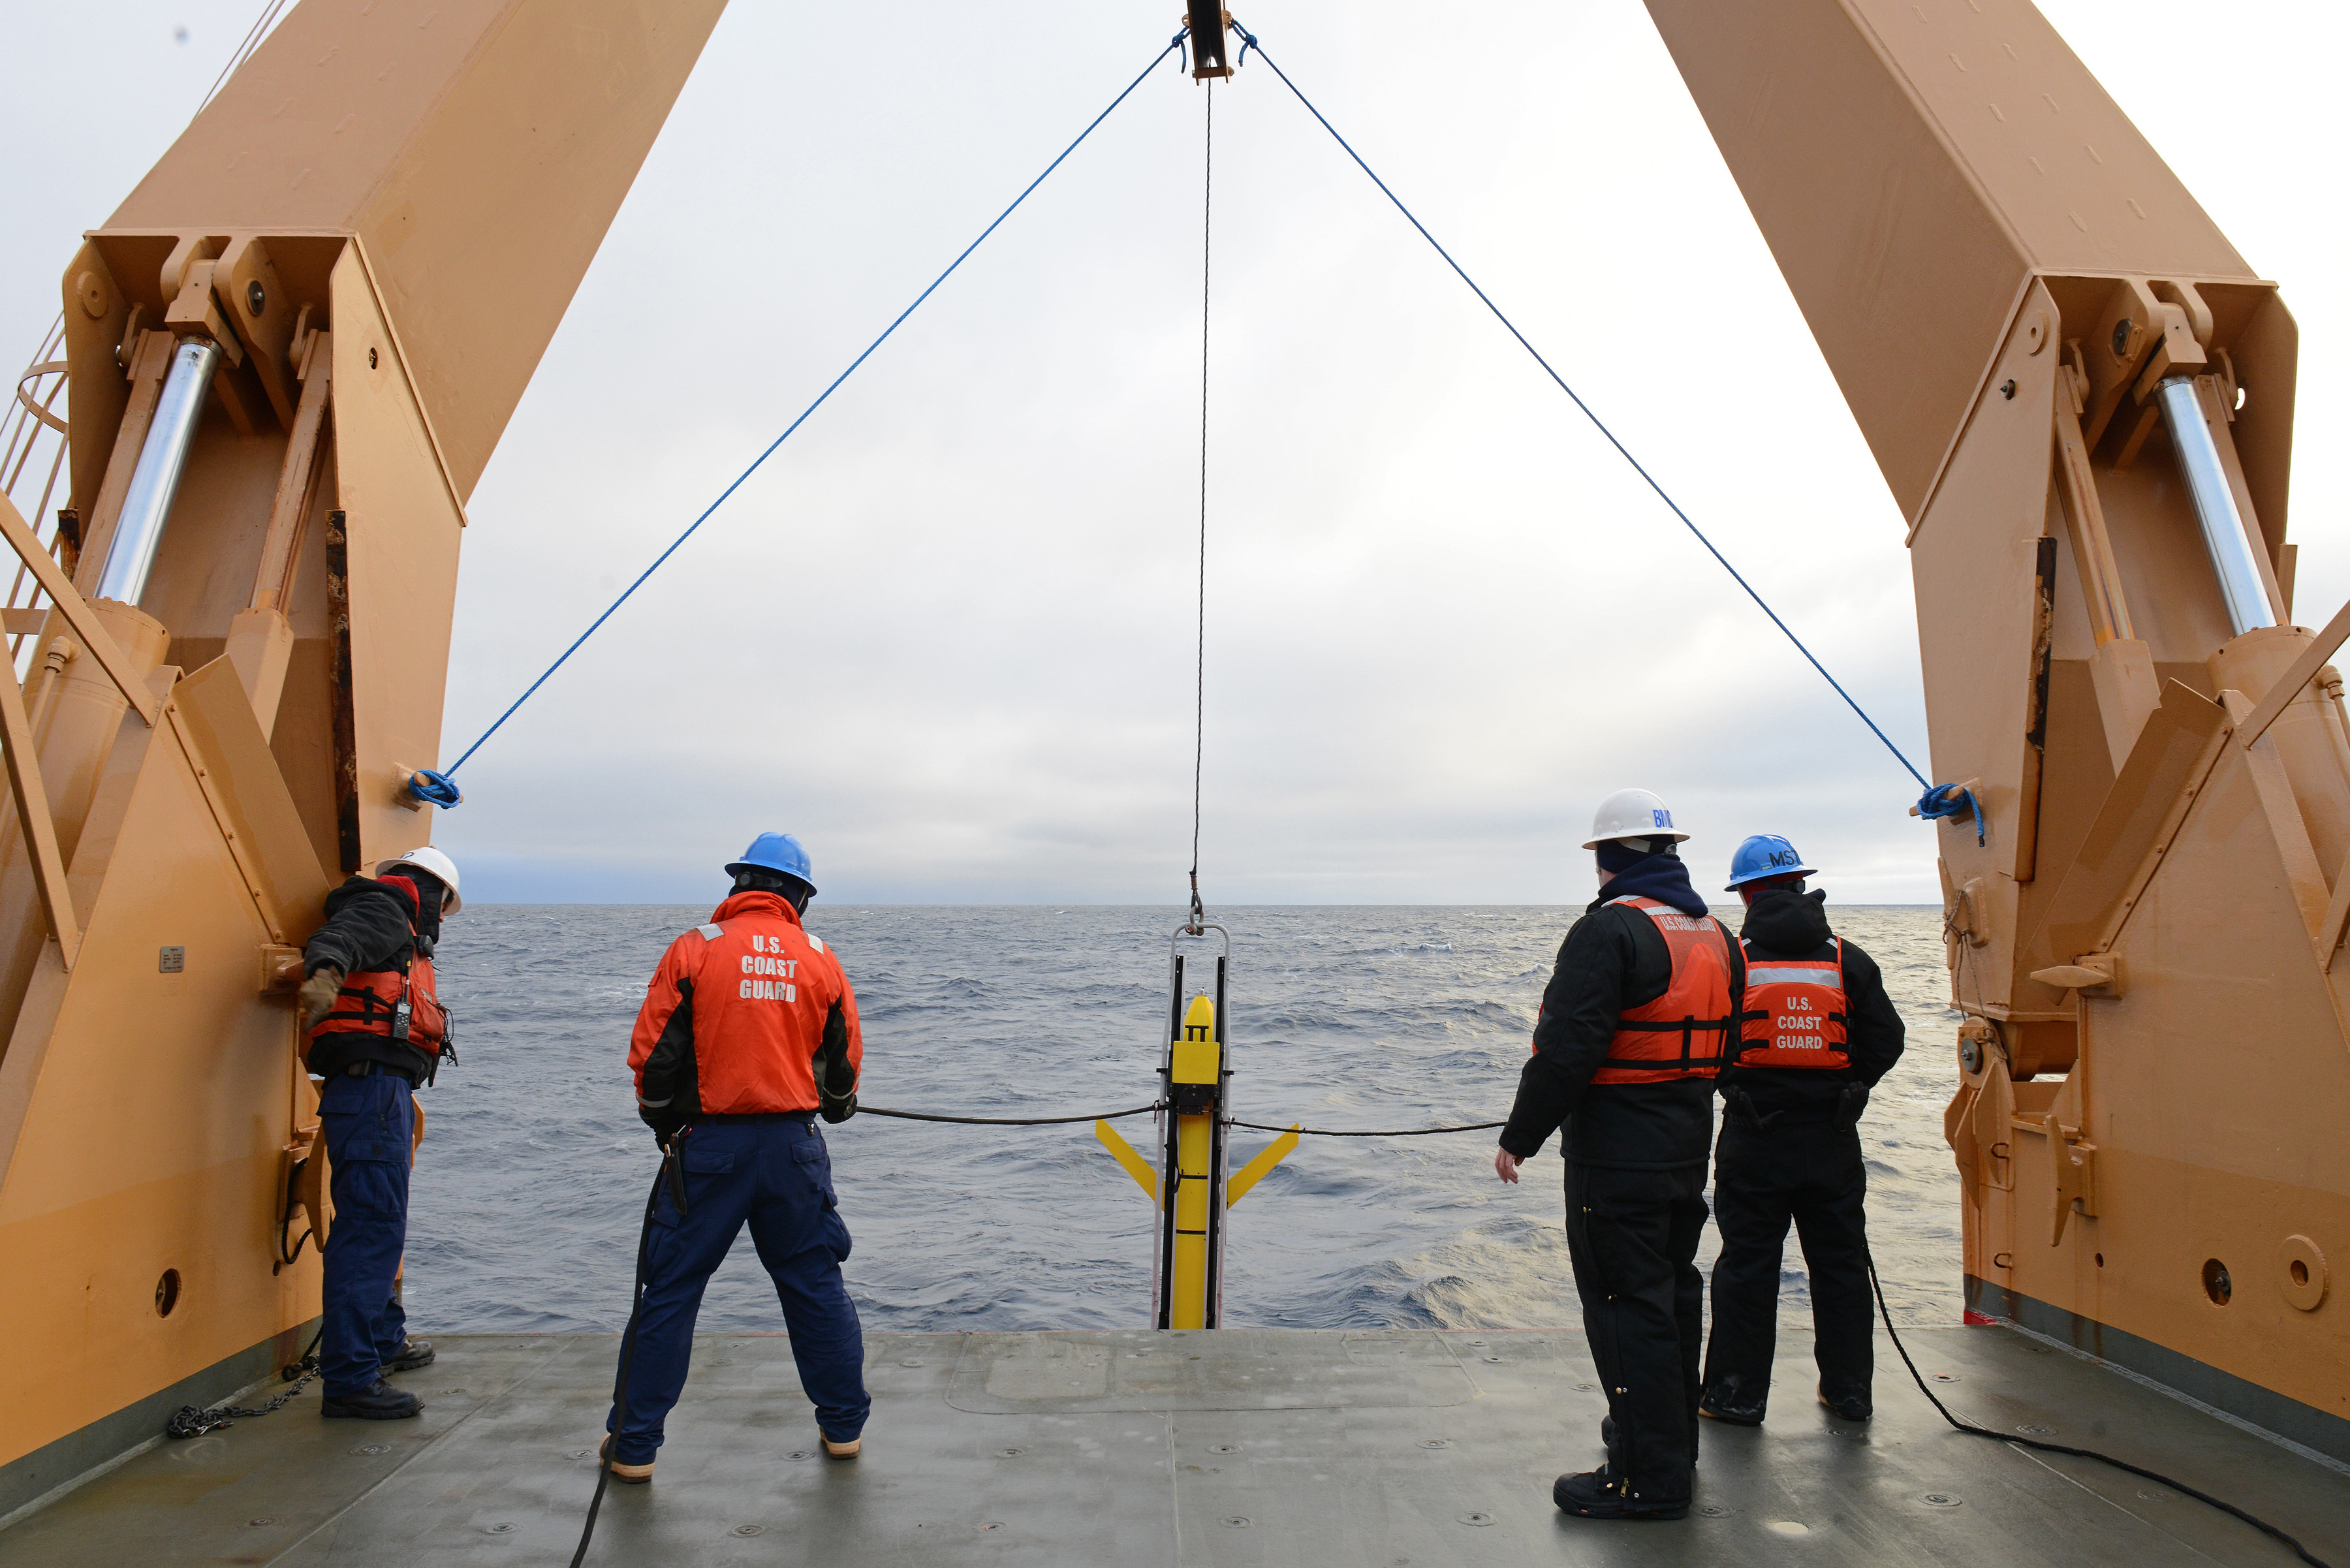 Crewmembers aboard Coast Guard Cutter Healy lower a Sea Glider into the Arctic Ocean on Sept. 20, 2016. The Healy has a multi-capable platform to fit deployments and recoveries of many different types and sizes of scientific equipment. U.S. Coast Guard photo by Petty Officer 3rd Class Lauren Steenson.